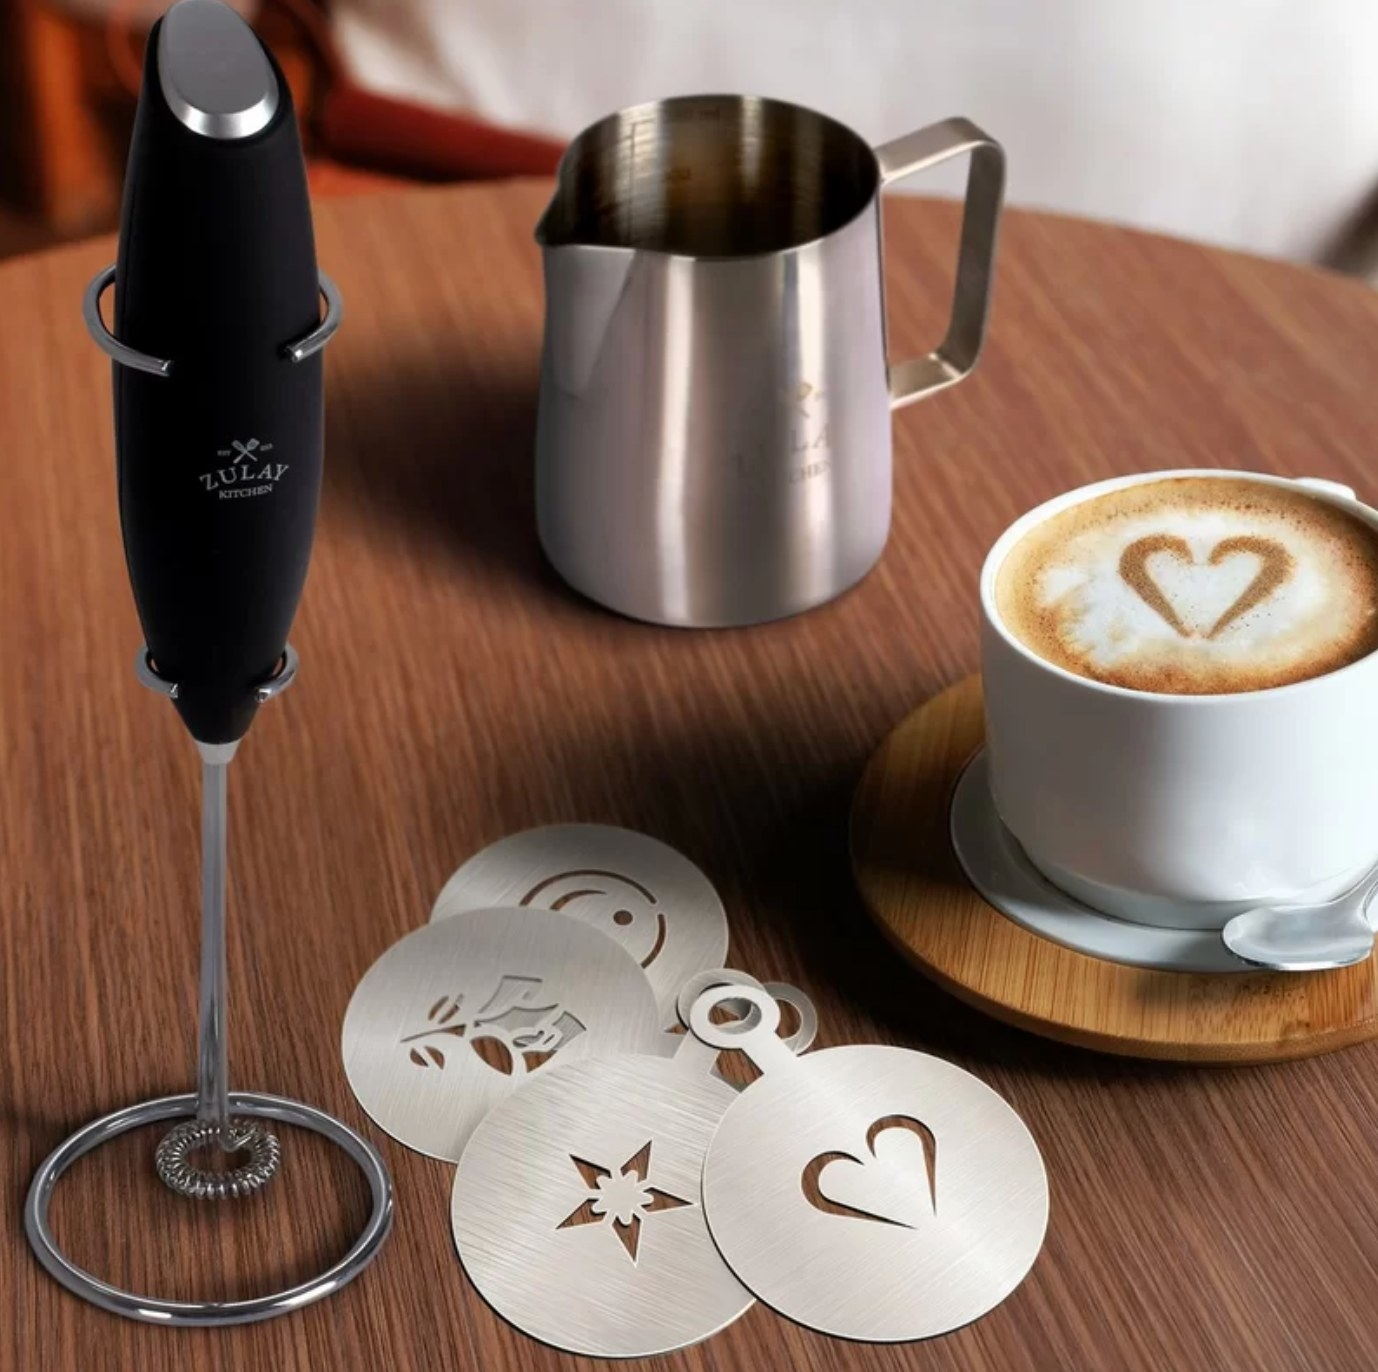 The professional handheld milk frother